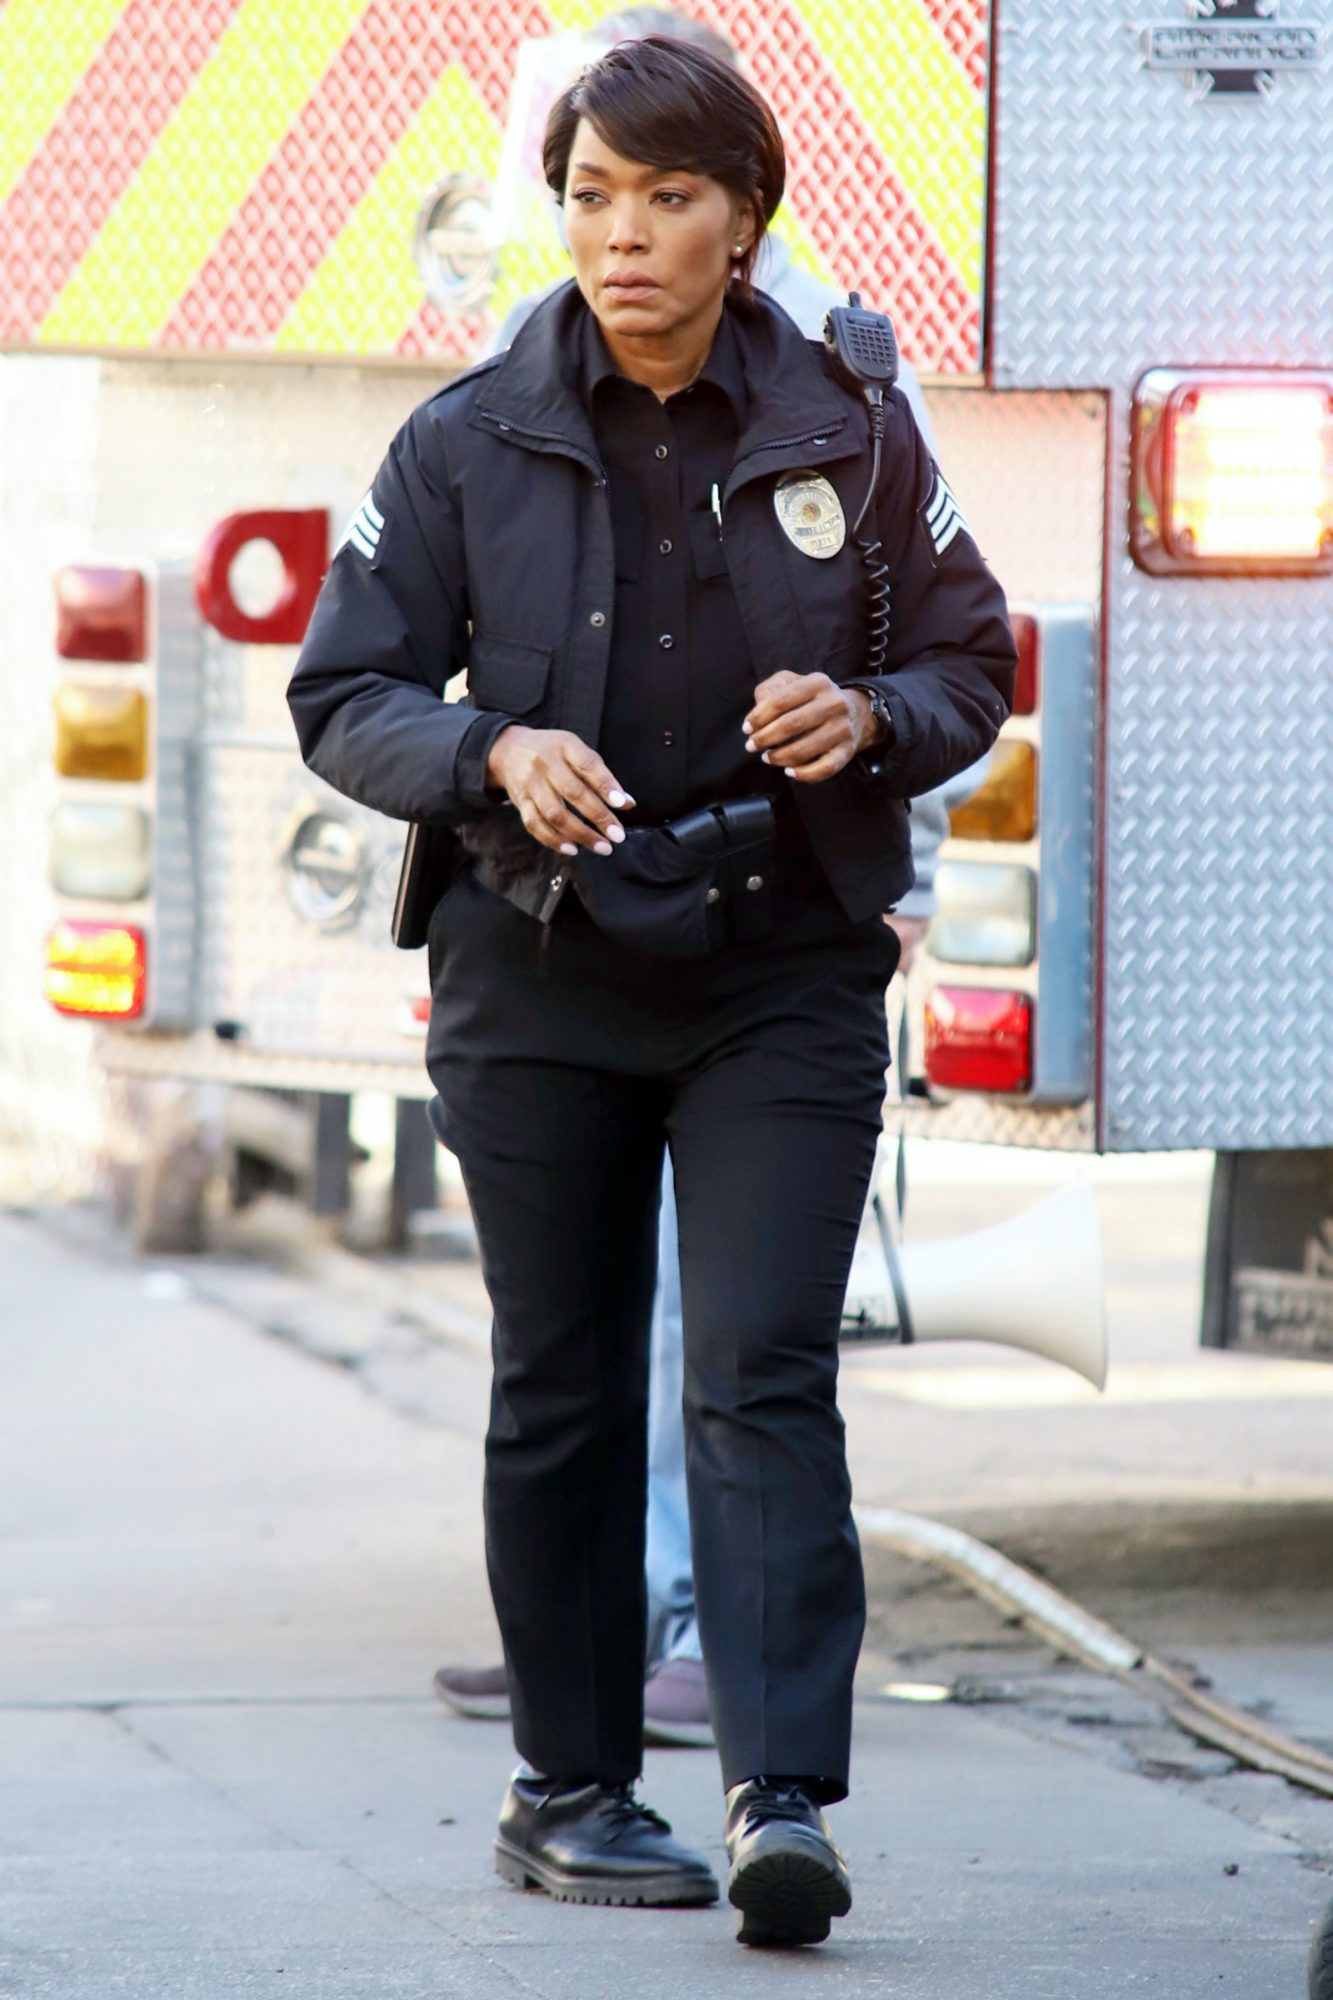 Angela Bassett on scene as a police officer for production of series Rescue 9-1-1